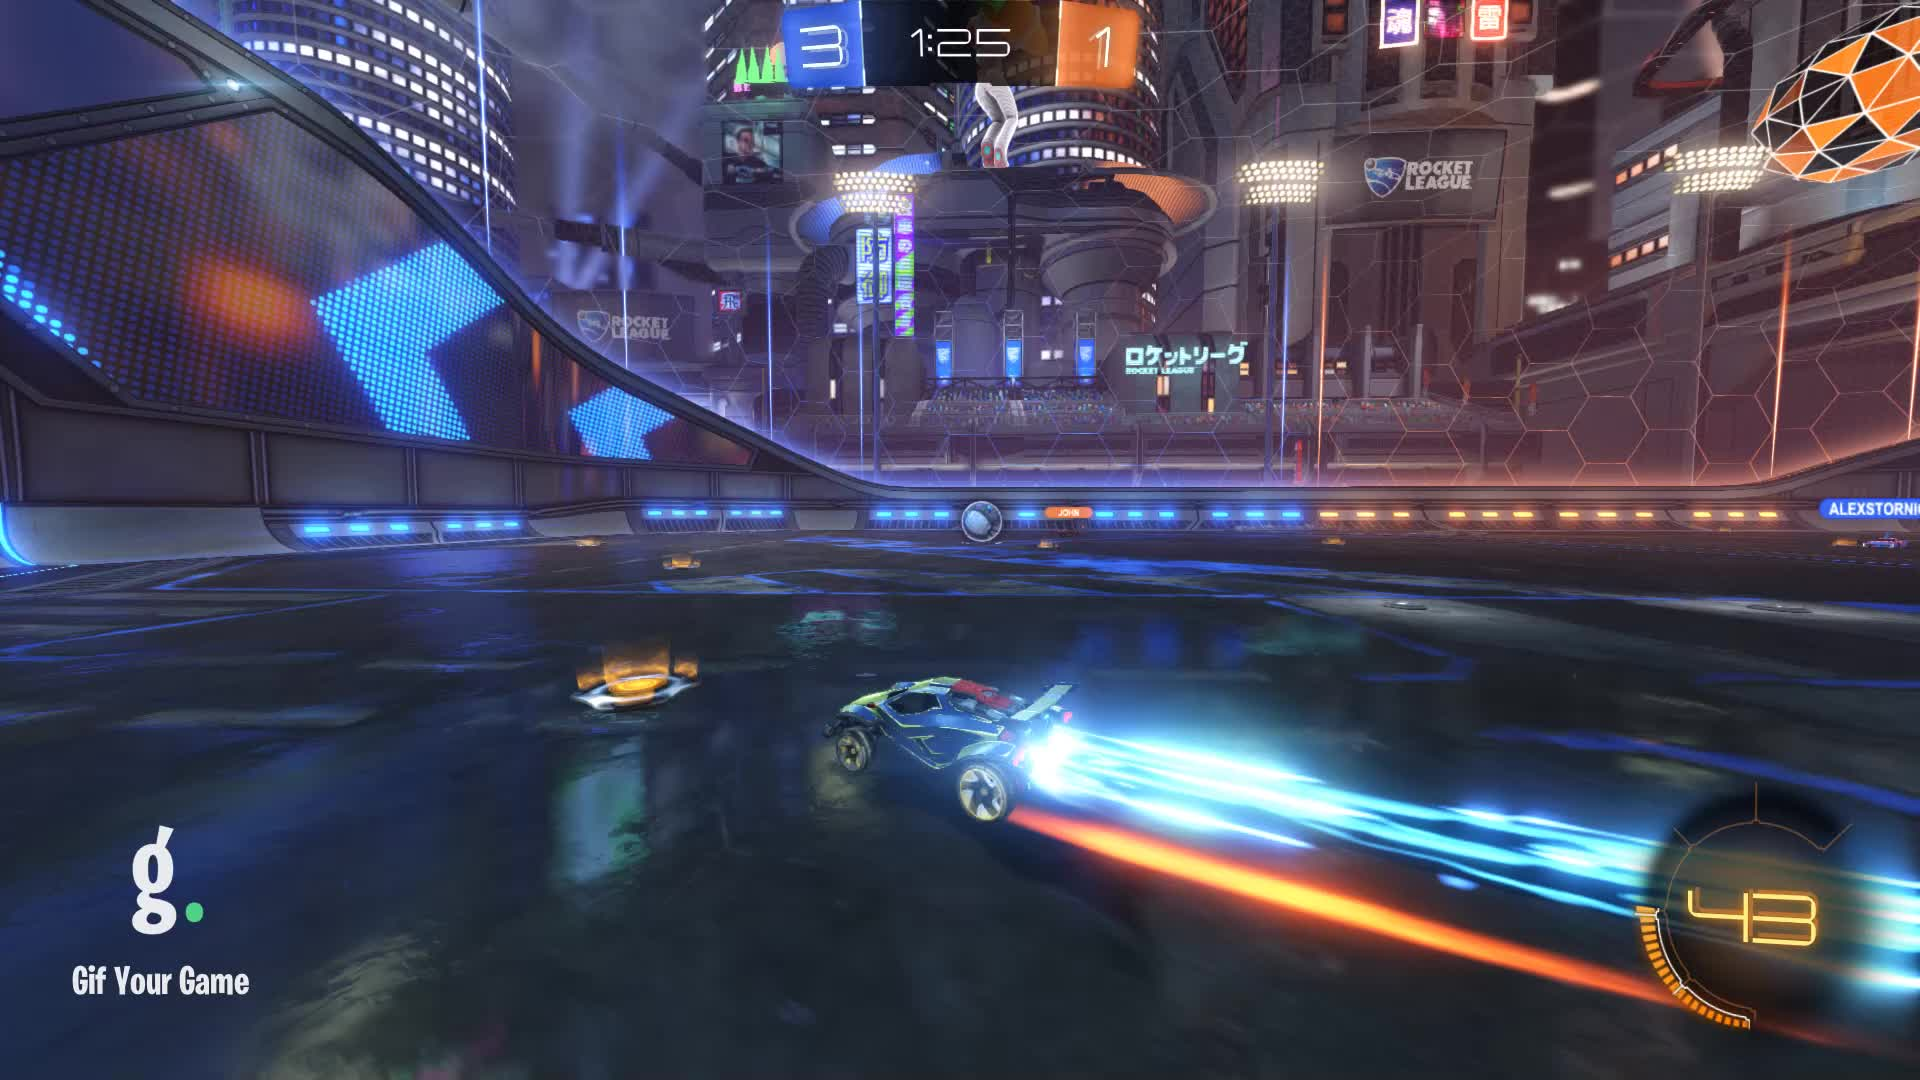 Gif Your Game, GifYourGame, ItWas...Justified, Rocket League, RocketLeague, Save, Save 4: ItWas...Justified GIFs